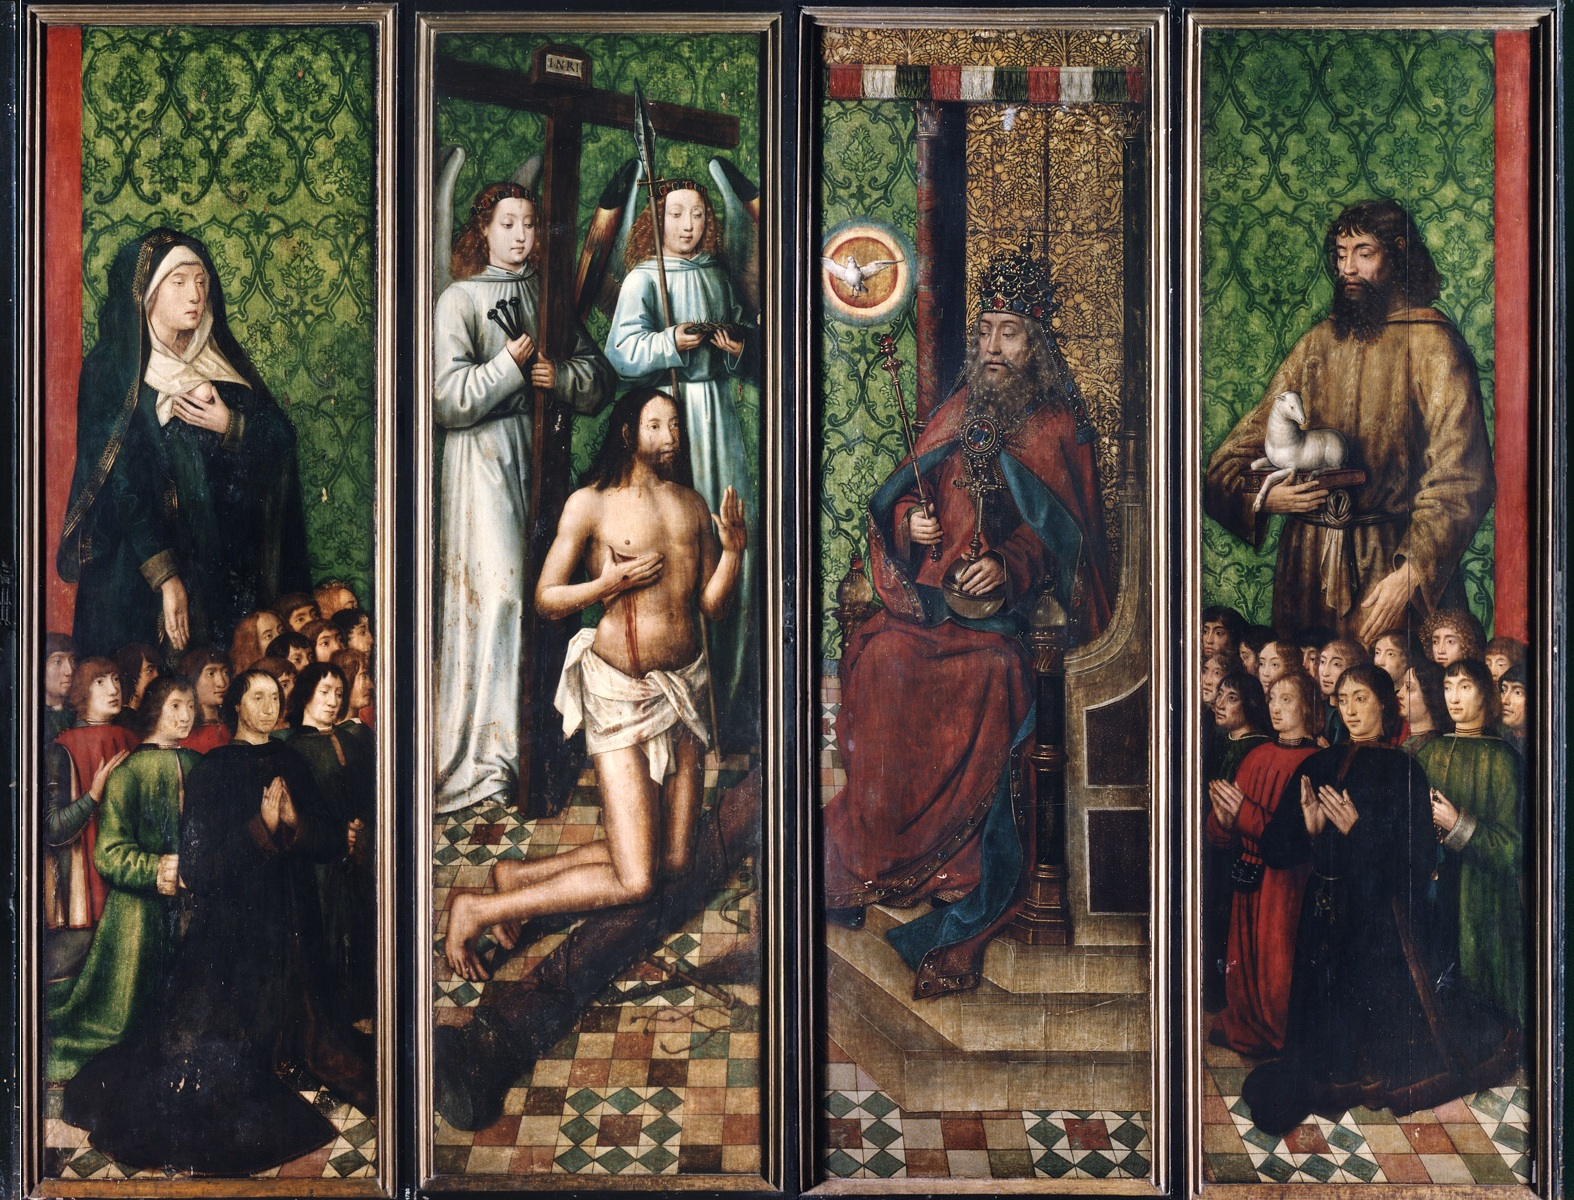 Bruges Master of the Saint Lucy Legend (1430/1440-1506/1509), <em>The Altarpiece of the Virgin Mary of the Brotherhood of the Black Heads</em>, before 1493<br>Second view of the altarpiece, Art Museum of Estonia